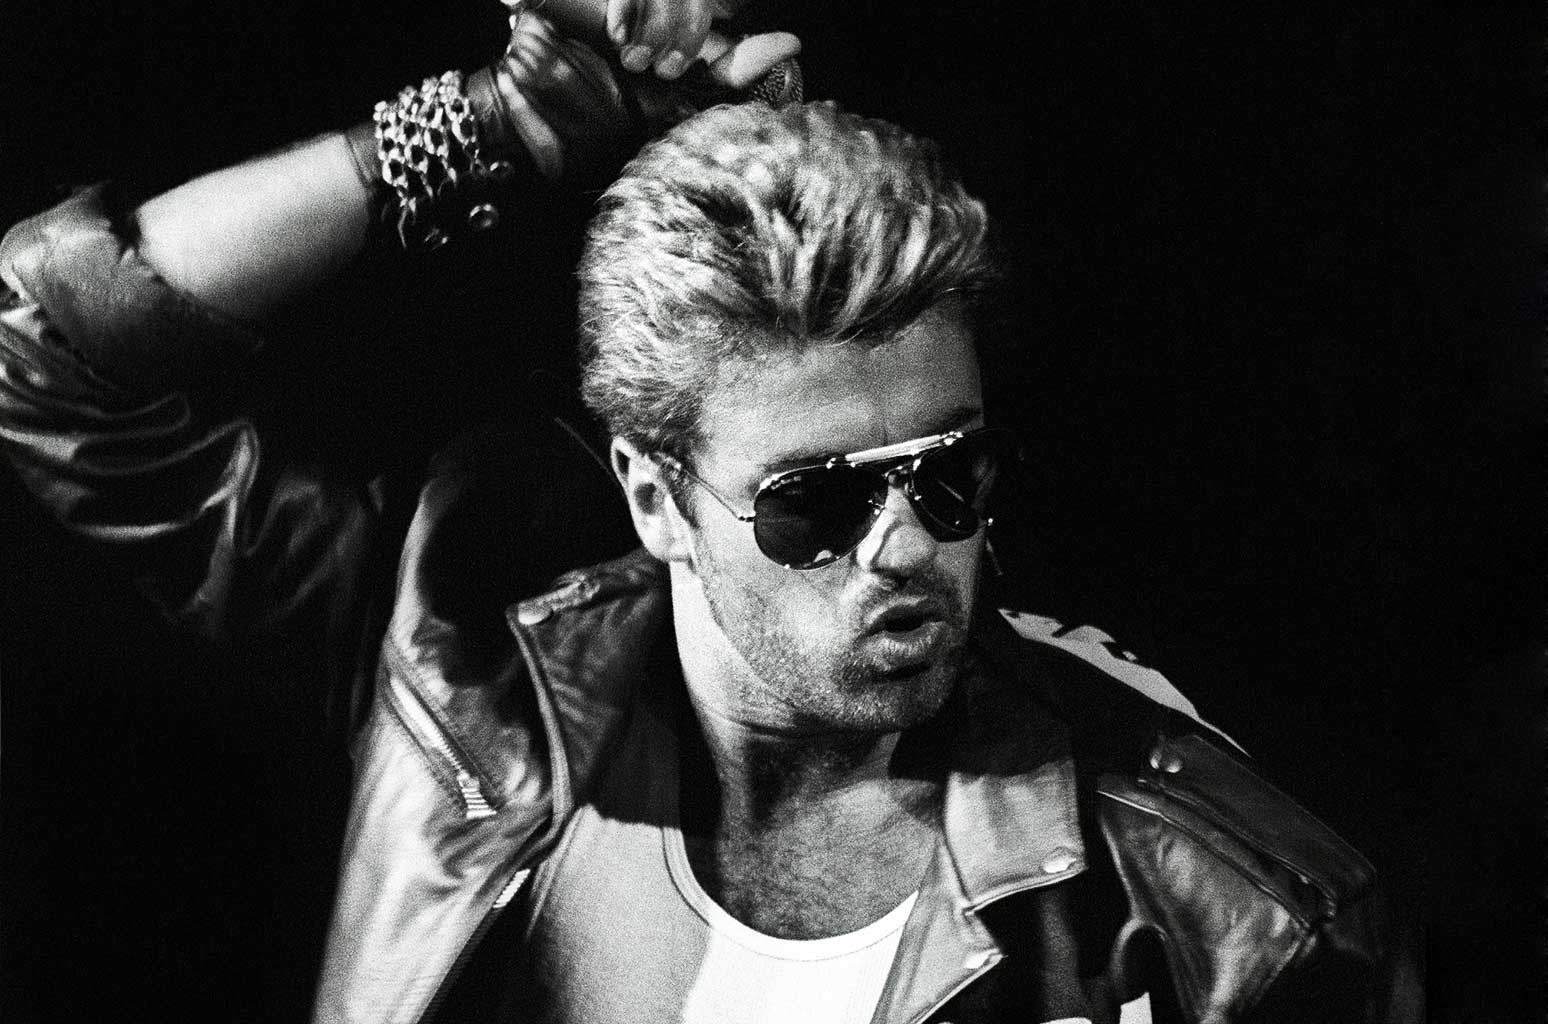 George Michael performs on stage during the Faith Tour in the Netherlands on April 12, 1988.